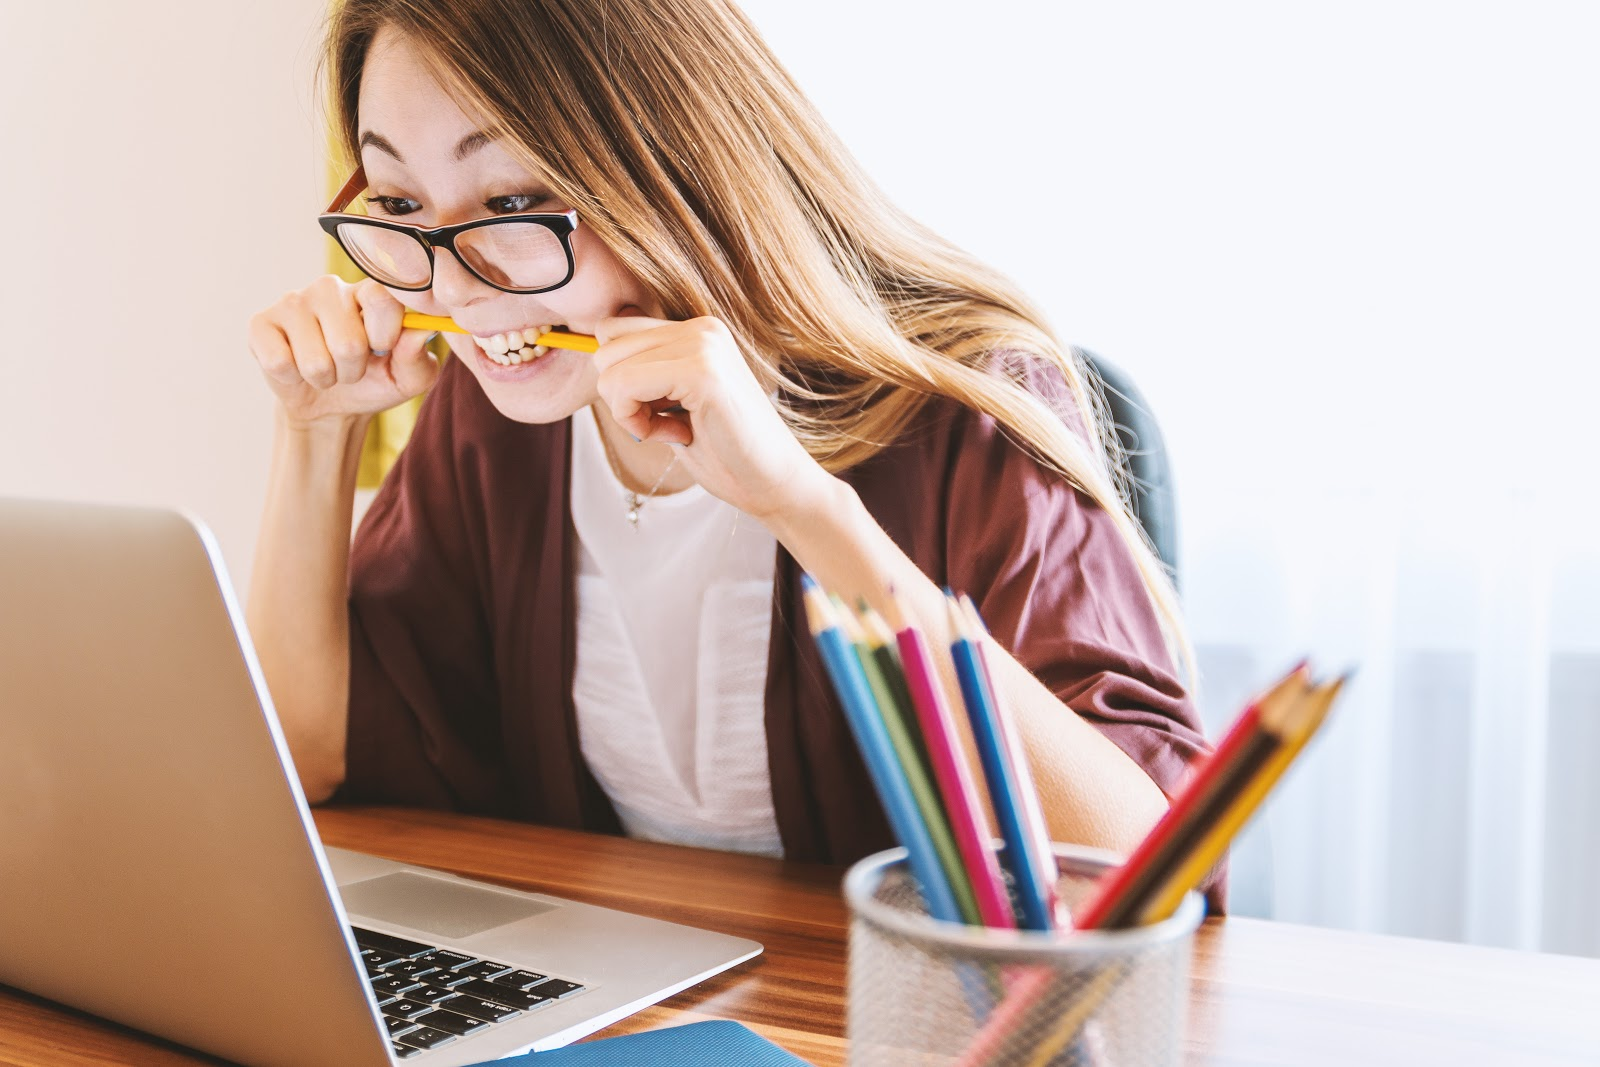 Woman in glasses sitting at a desk and biting a pencil while looking at the screen.